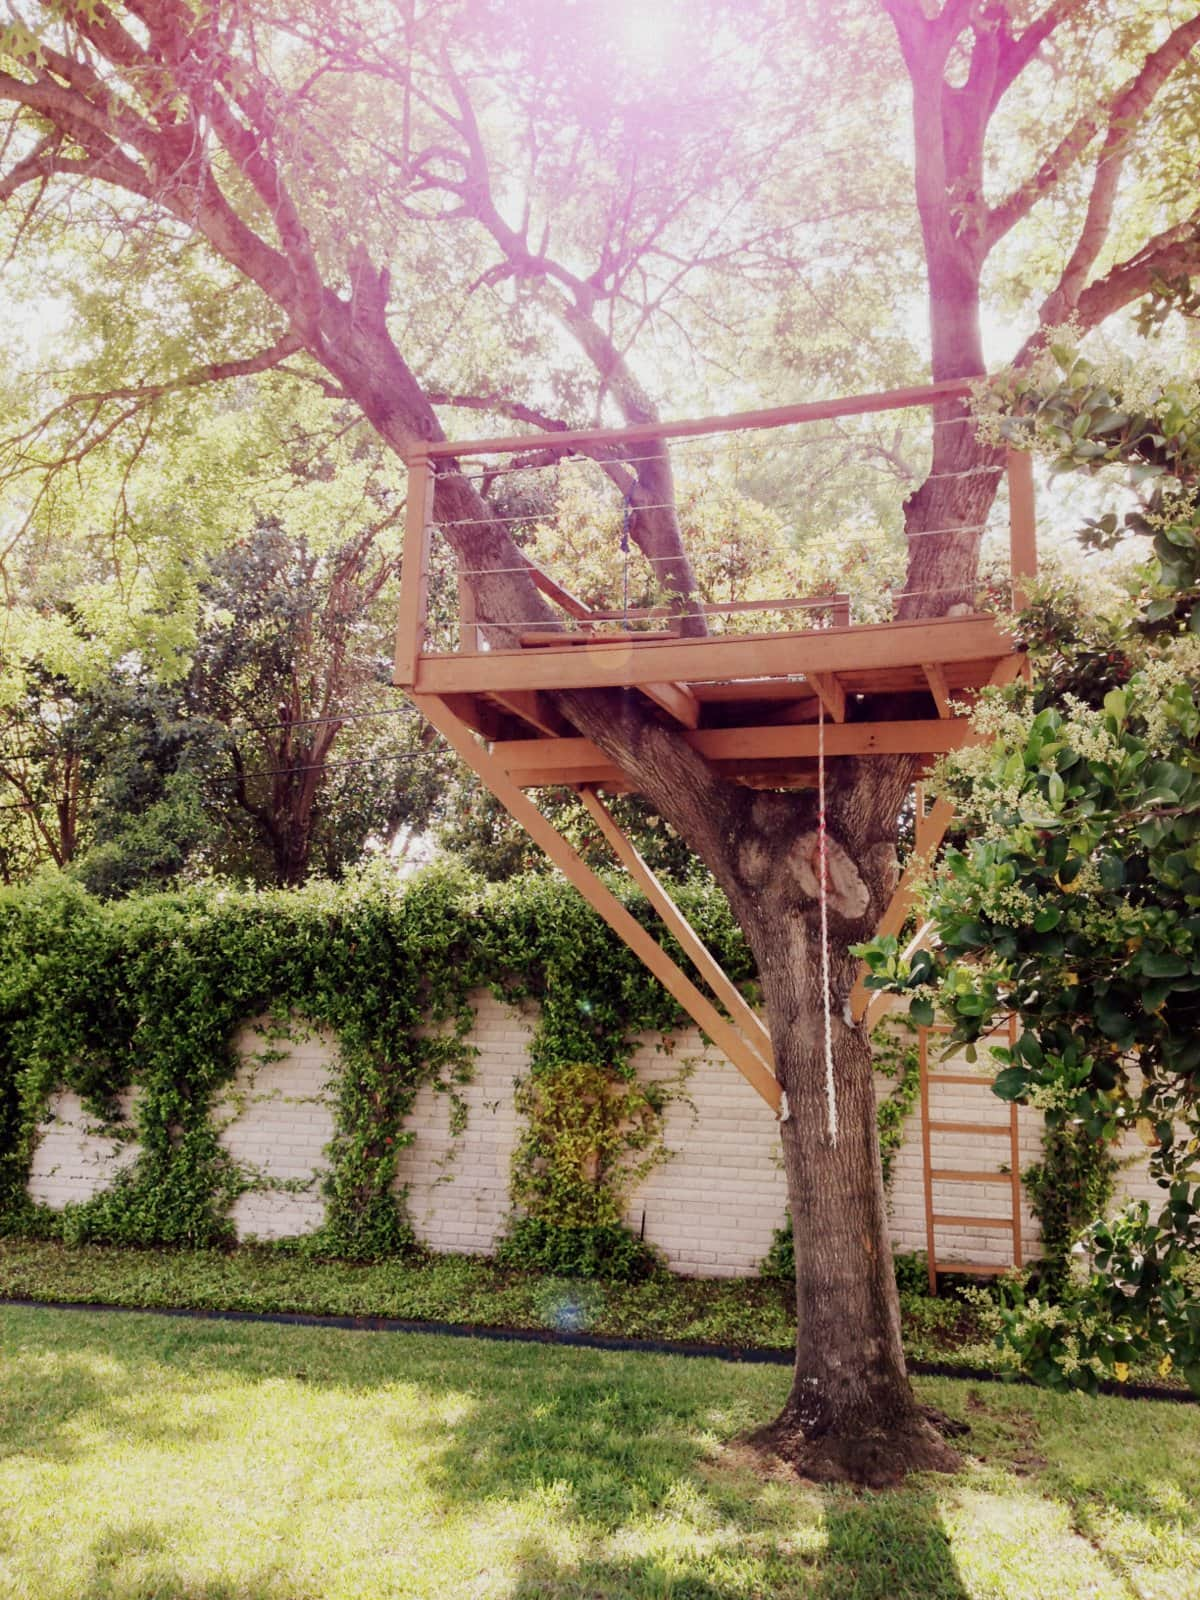 Platform treehouse with lumber supports